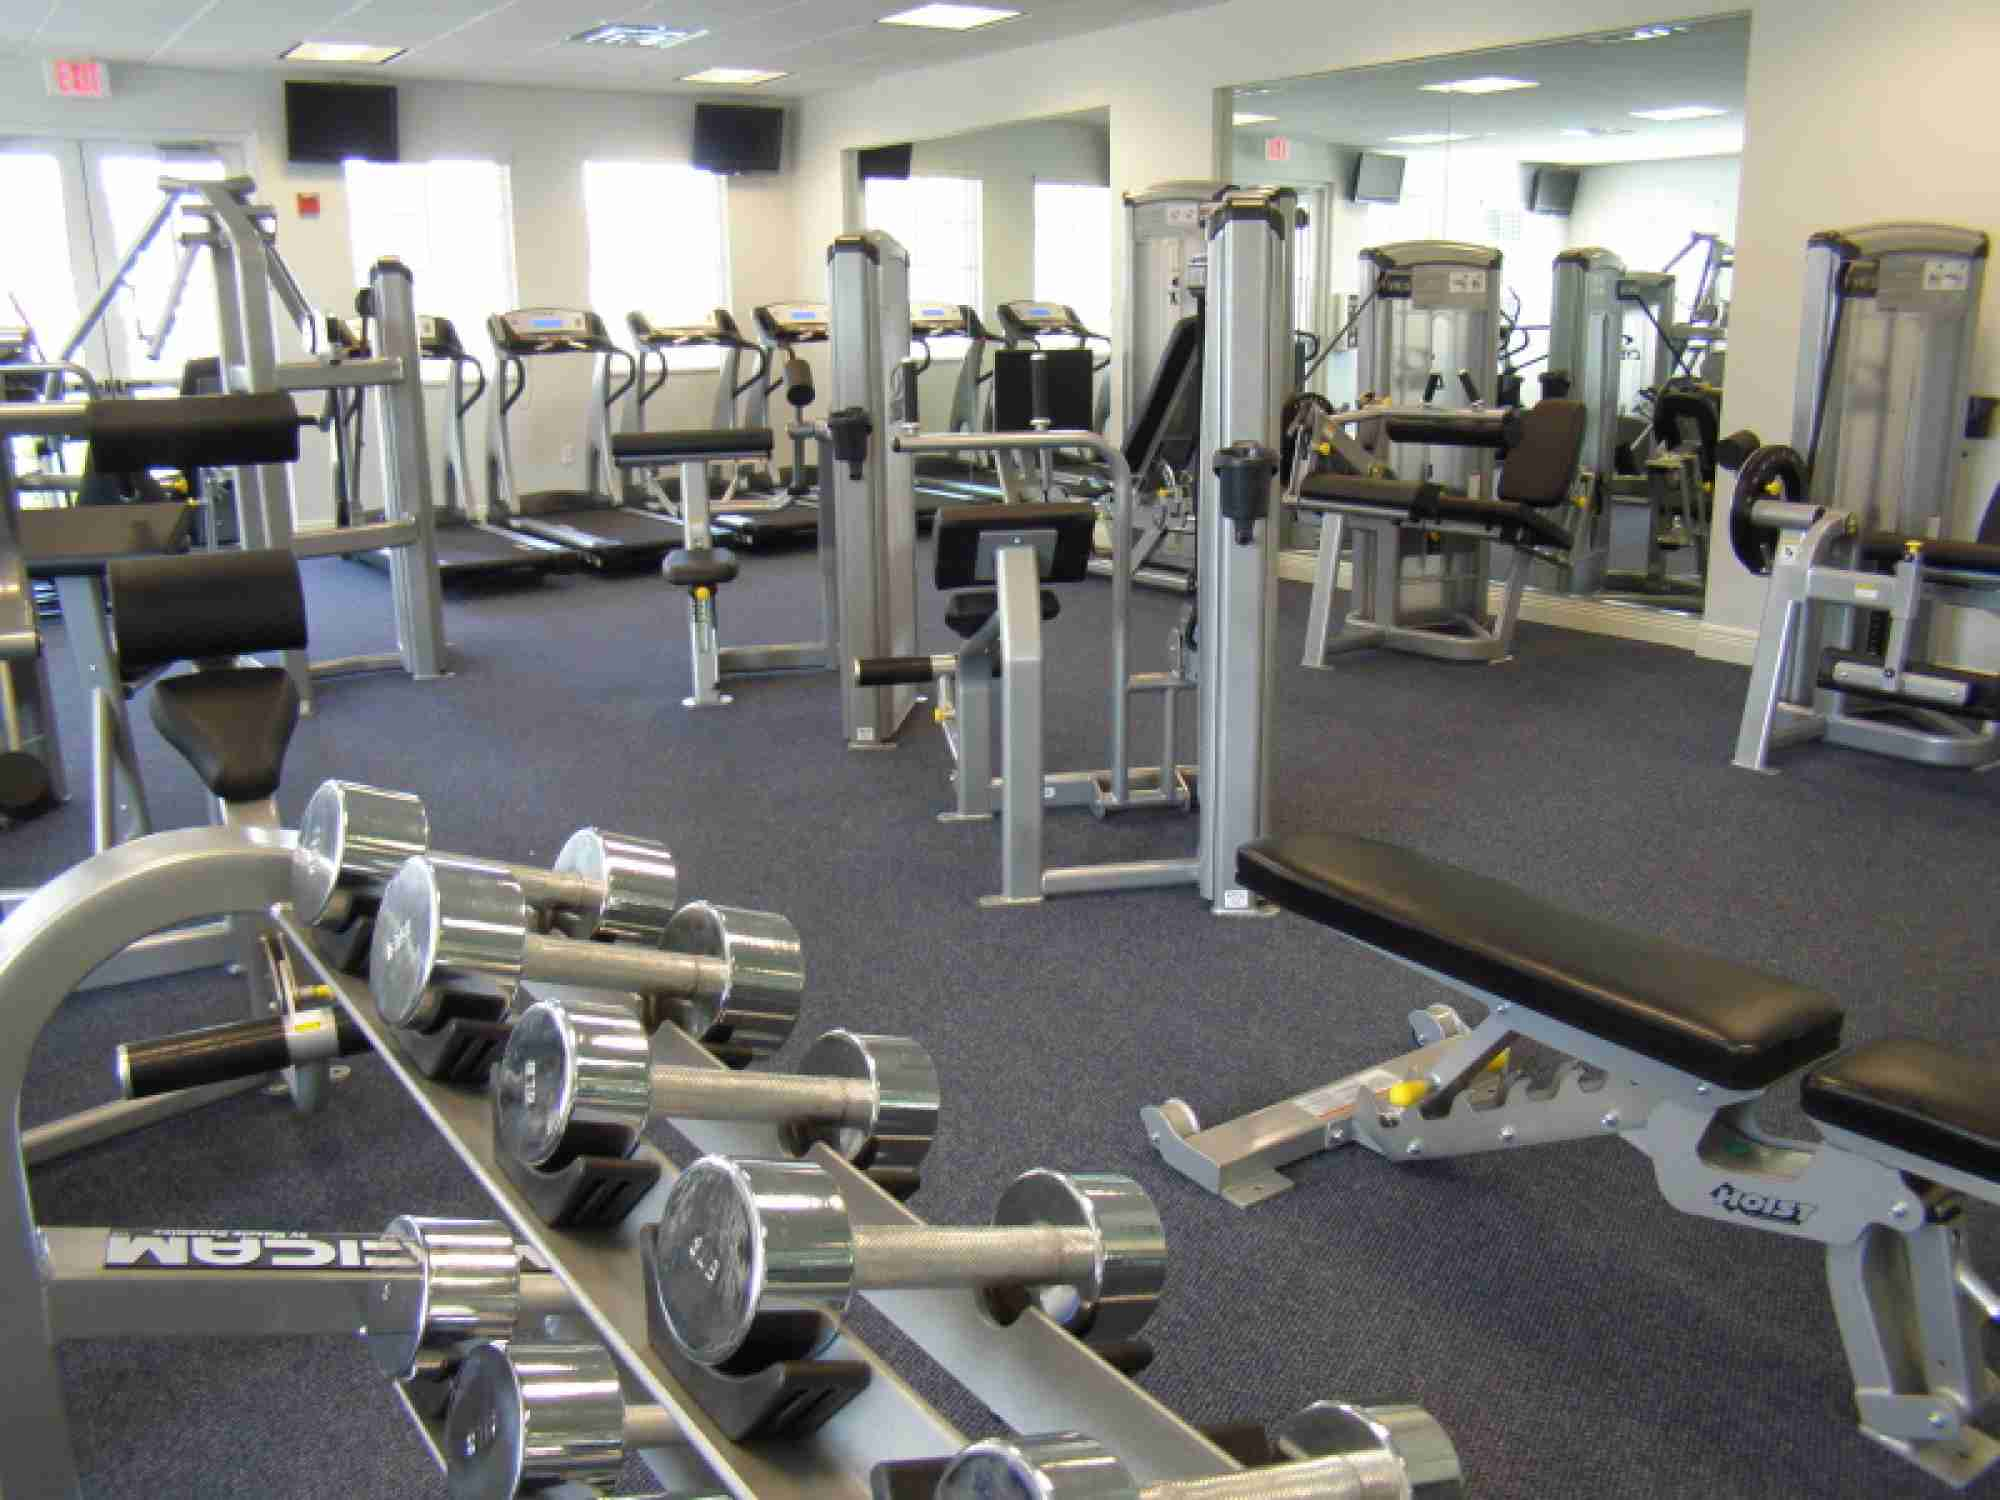 Fabulous Fitness Center!